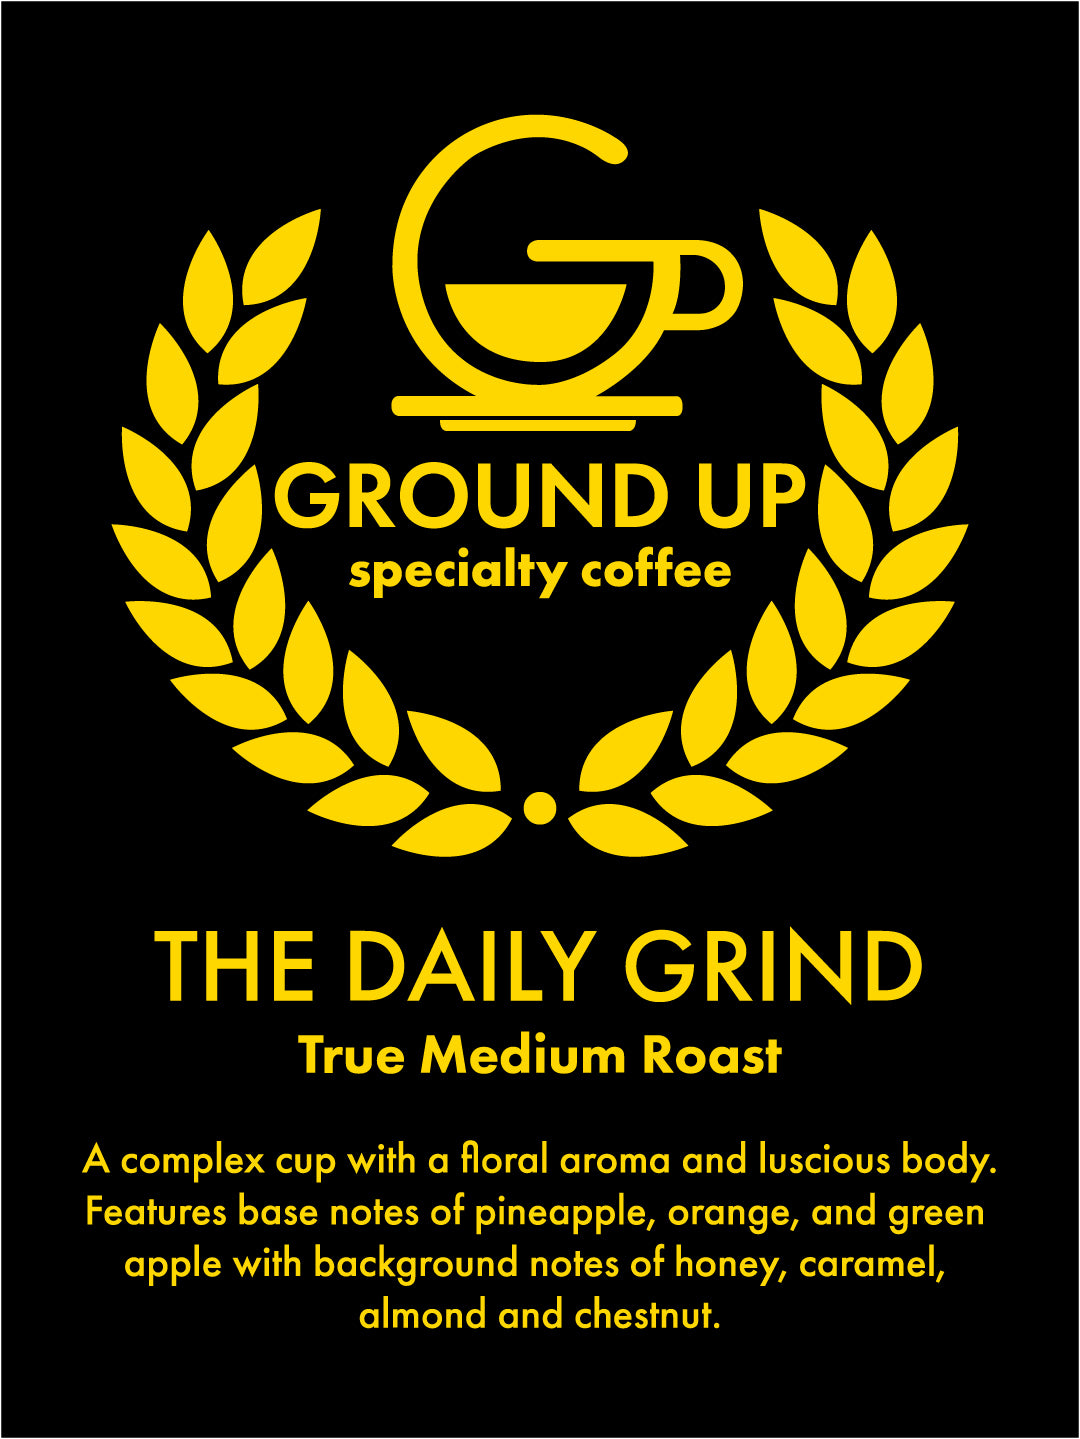 The Daily Grind - True Medium Roast - Batch Brewed Coffee